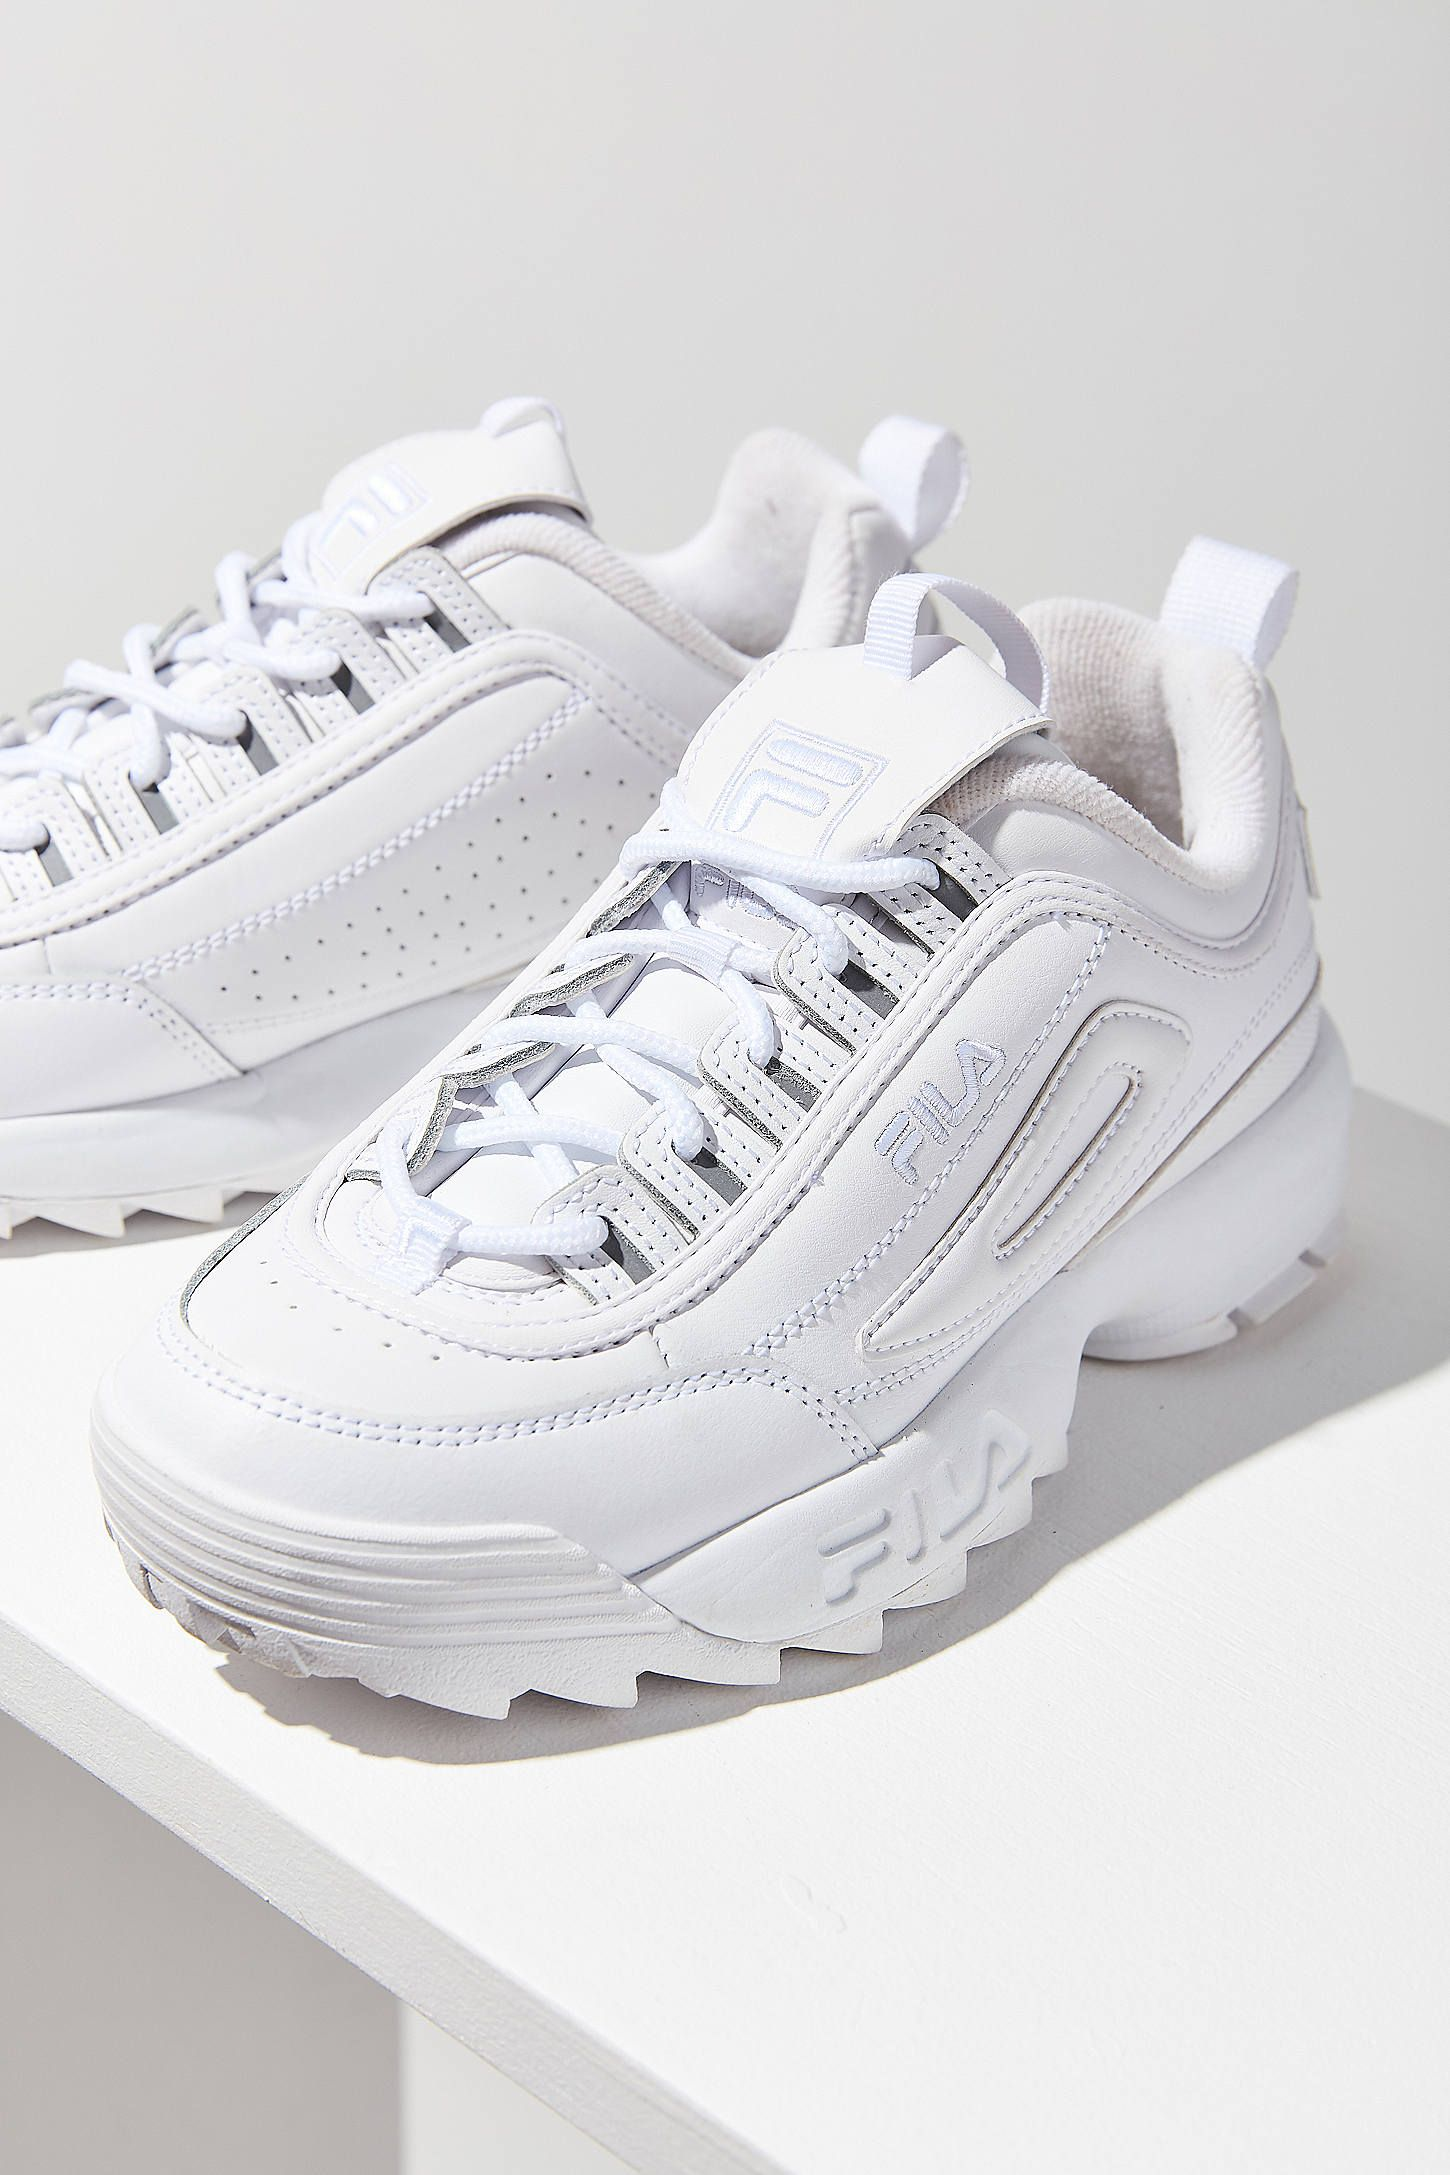 48c9bb25fb35 Shop FILA Disruptor II Premium Mono Sneaker at Urban Outfitters today. We  carry all the latest styles